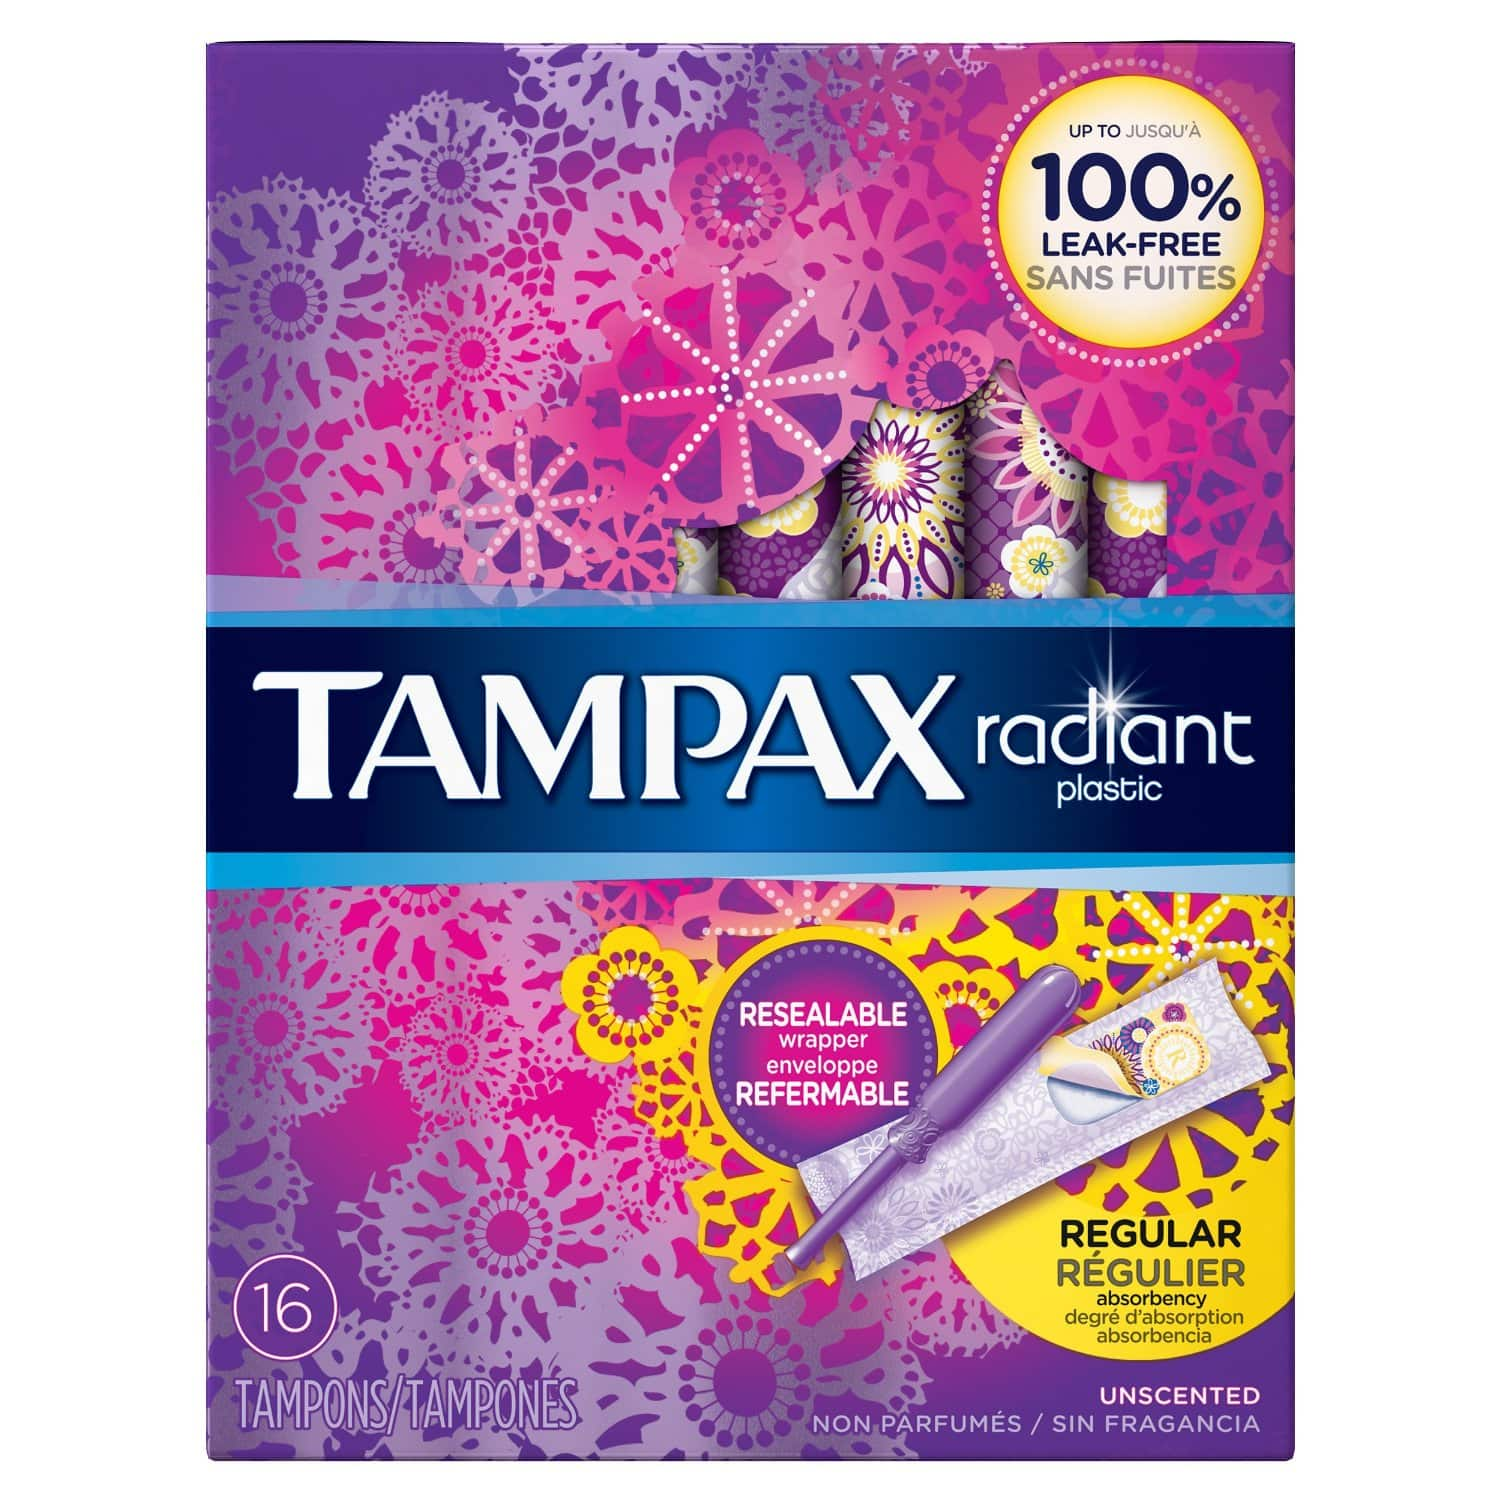 Amazon has 16-Count Tampax Radiant Plastic Unscented Tampons $2.37